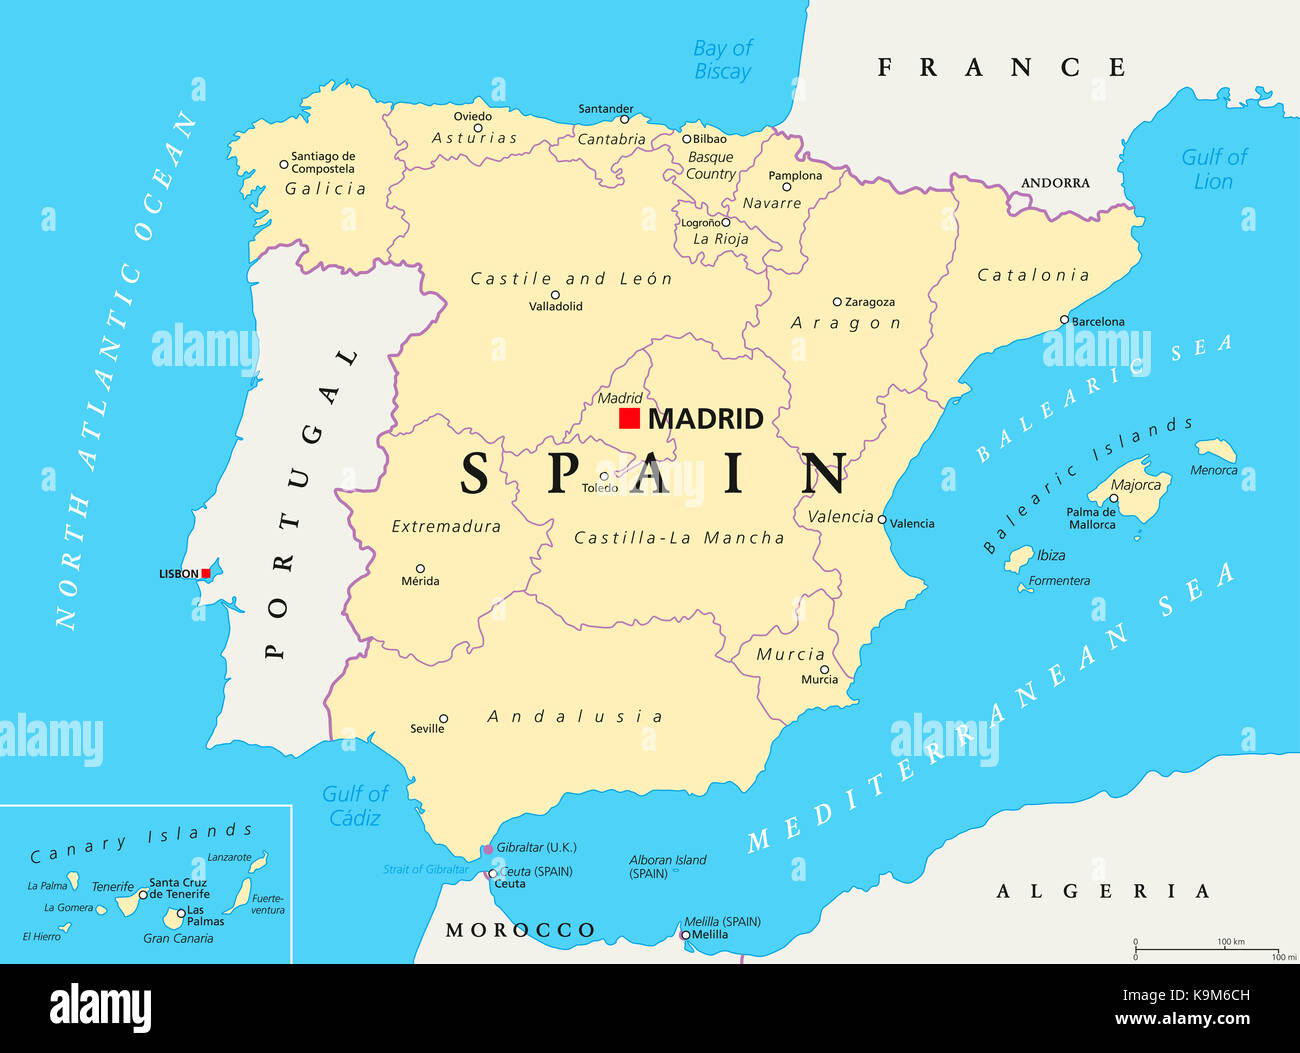 Spain administrative divisions political map Autonomous communities